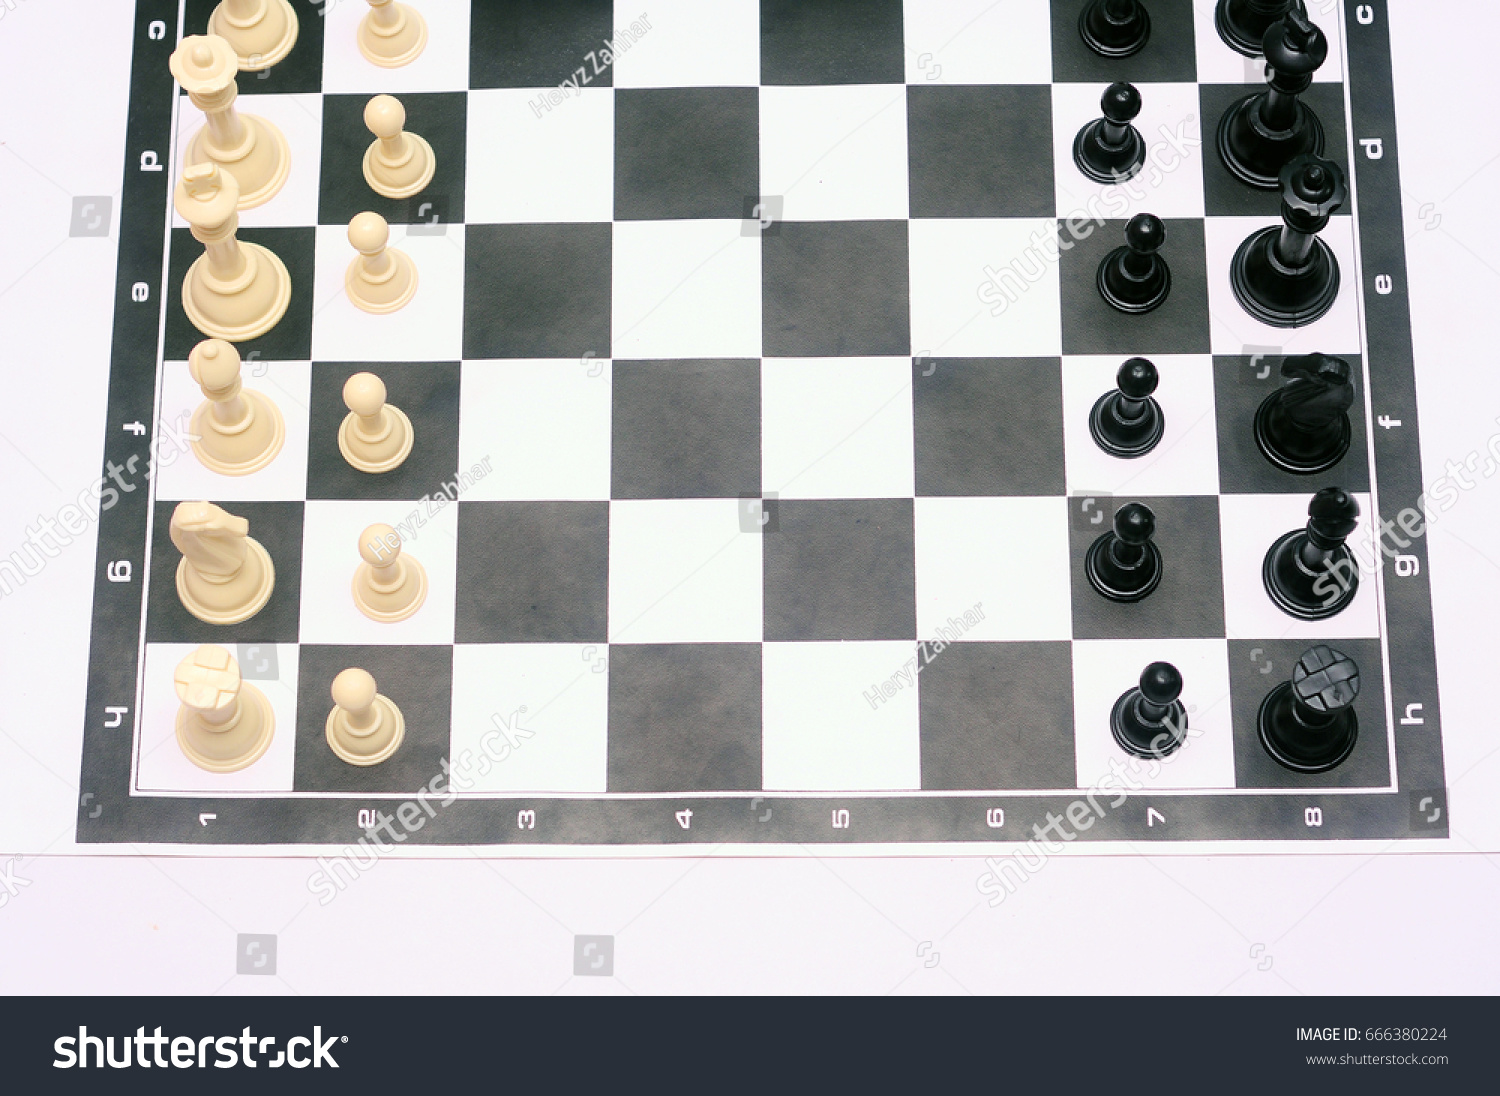 Chess Pieces Board Layout Miscellaneous Stock Image 666380224